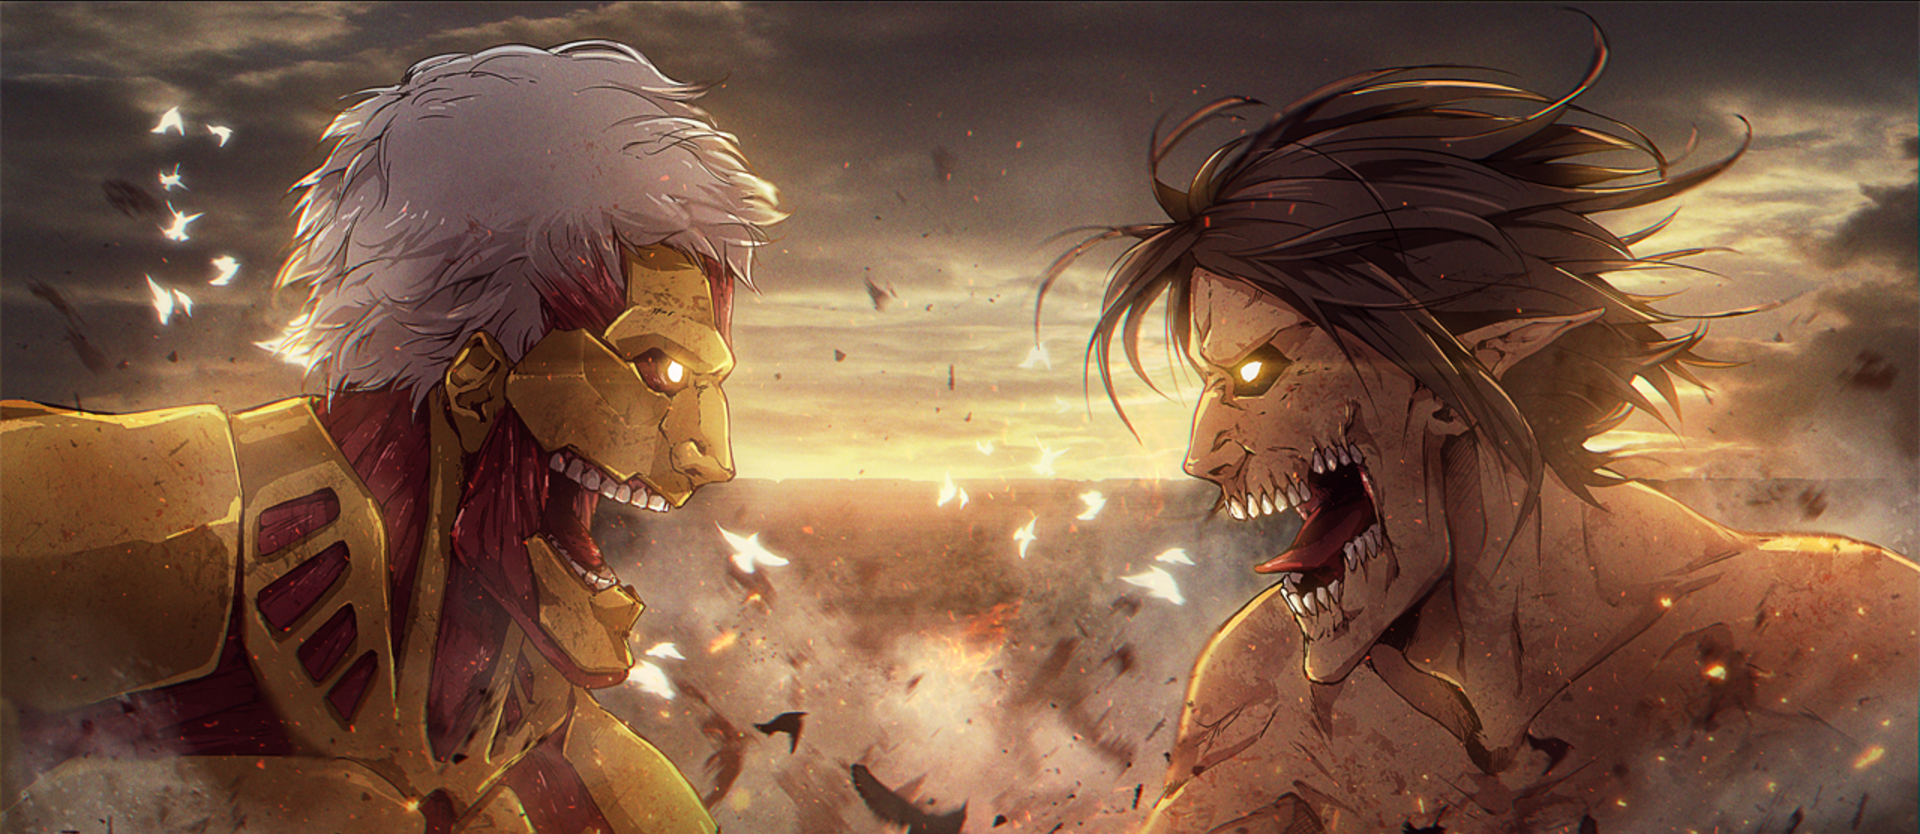 أنمي Attack on Titan